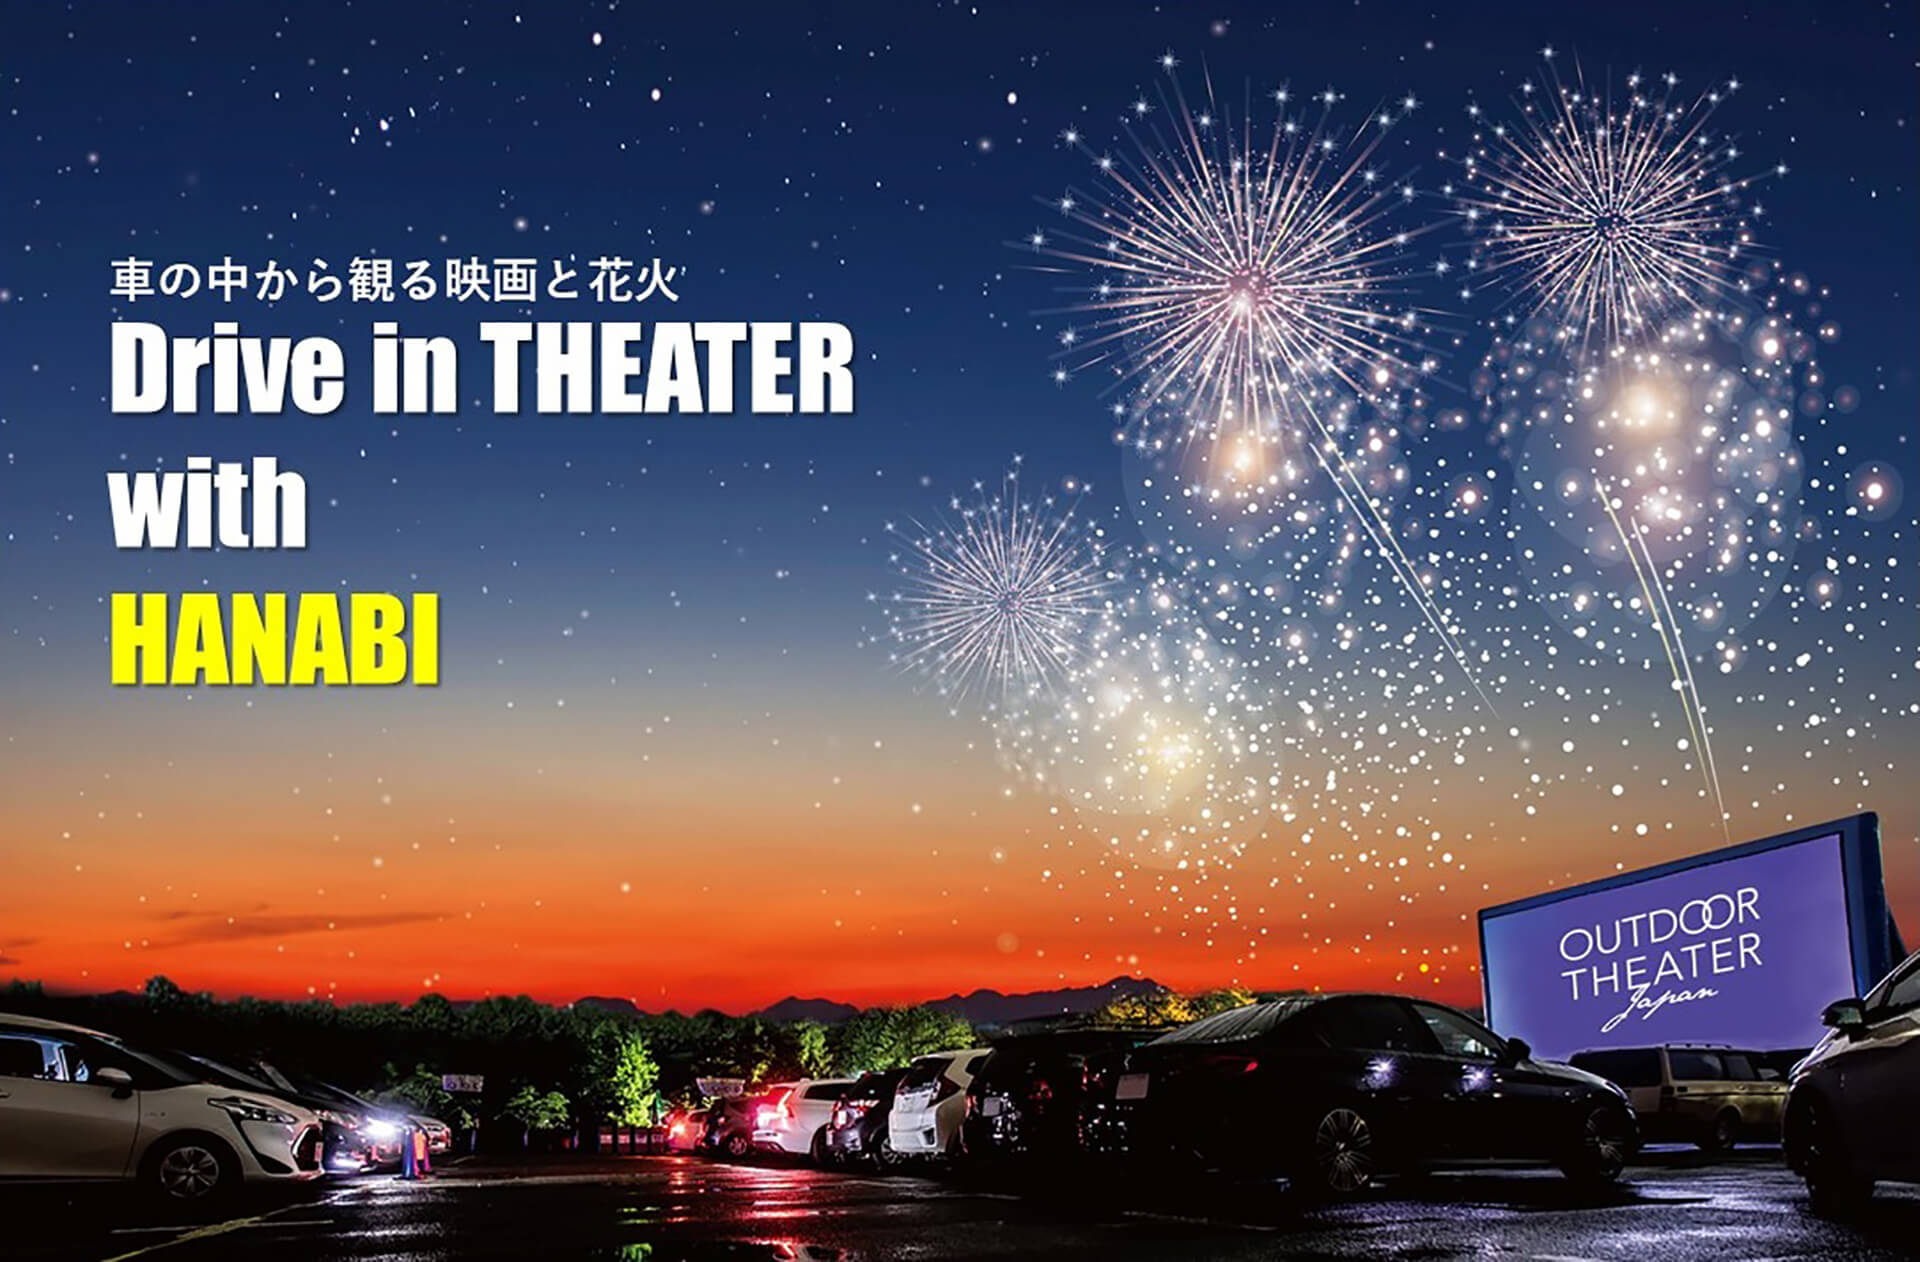 Drive in THEATER with HANABI